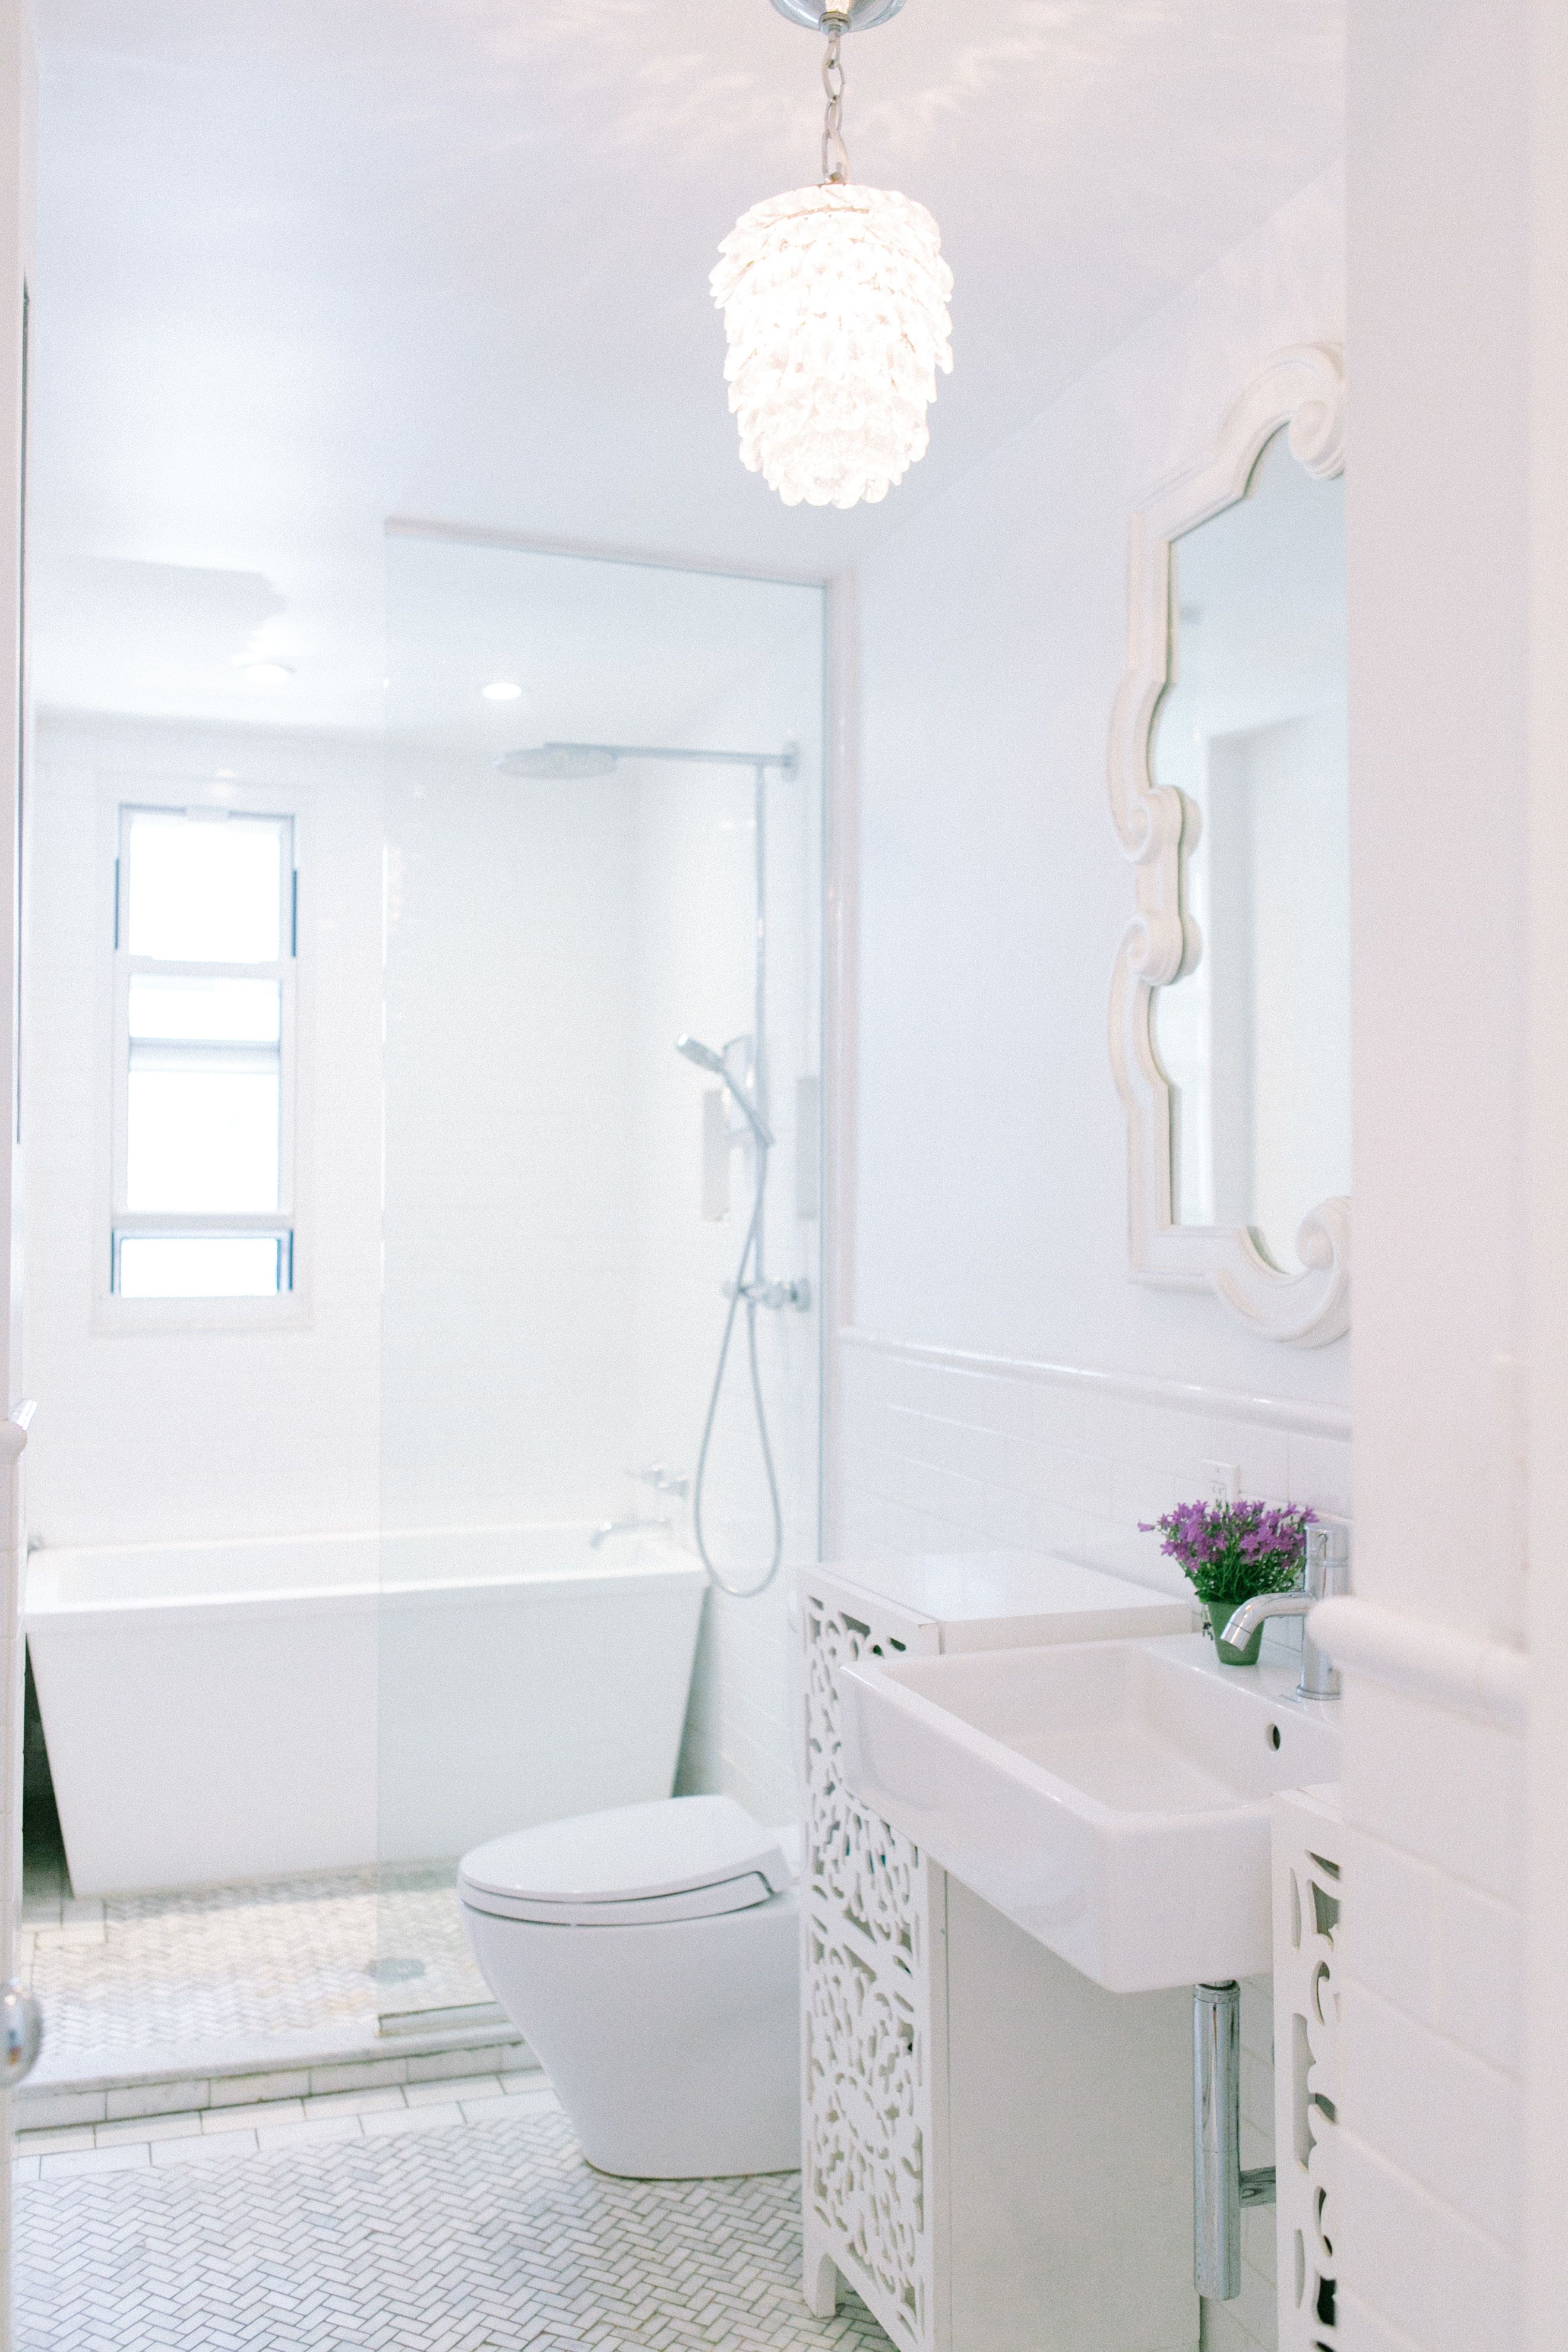 36 of the Prettiest Bathrooms of All Time | Manhattan, Interiors and ...